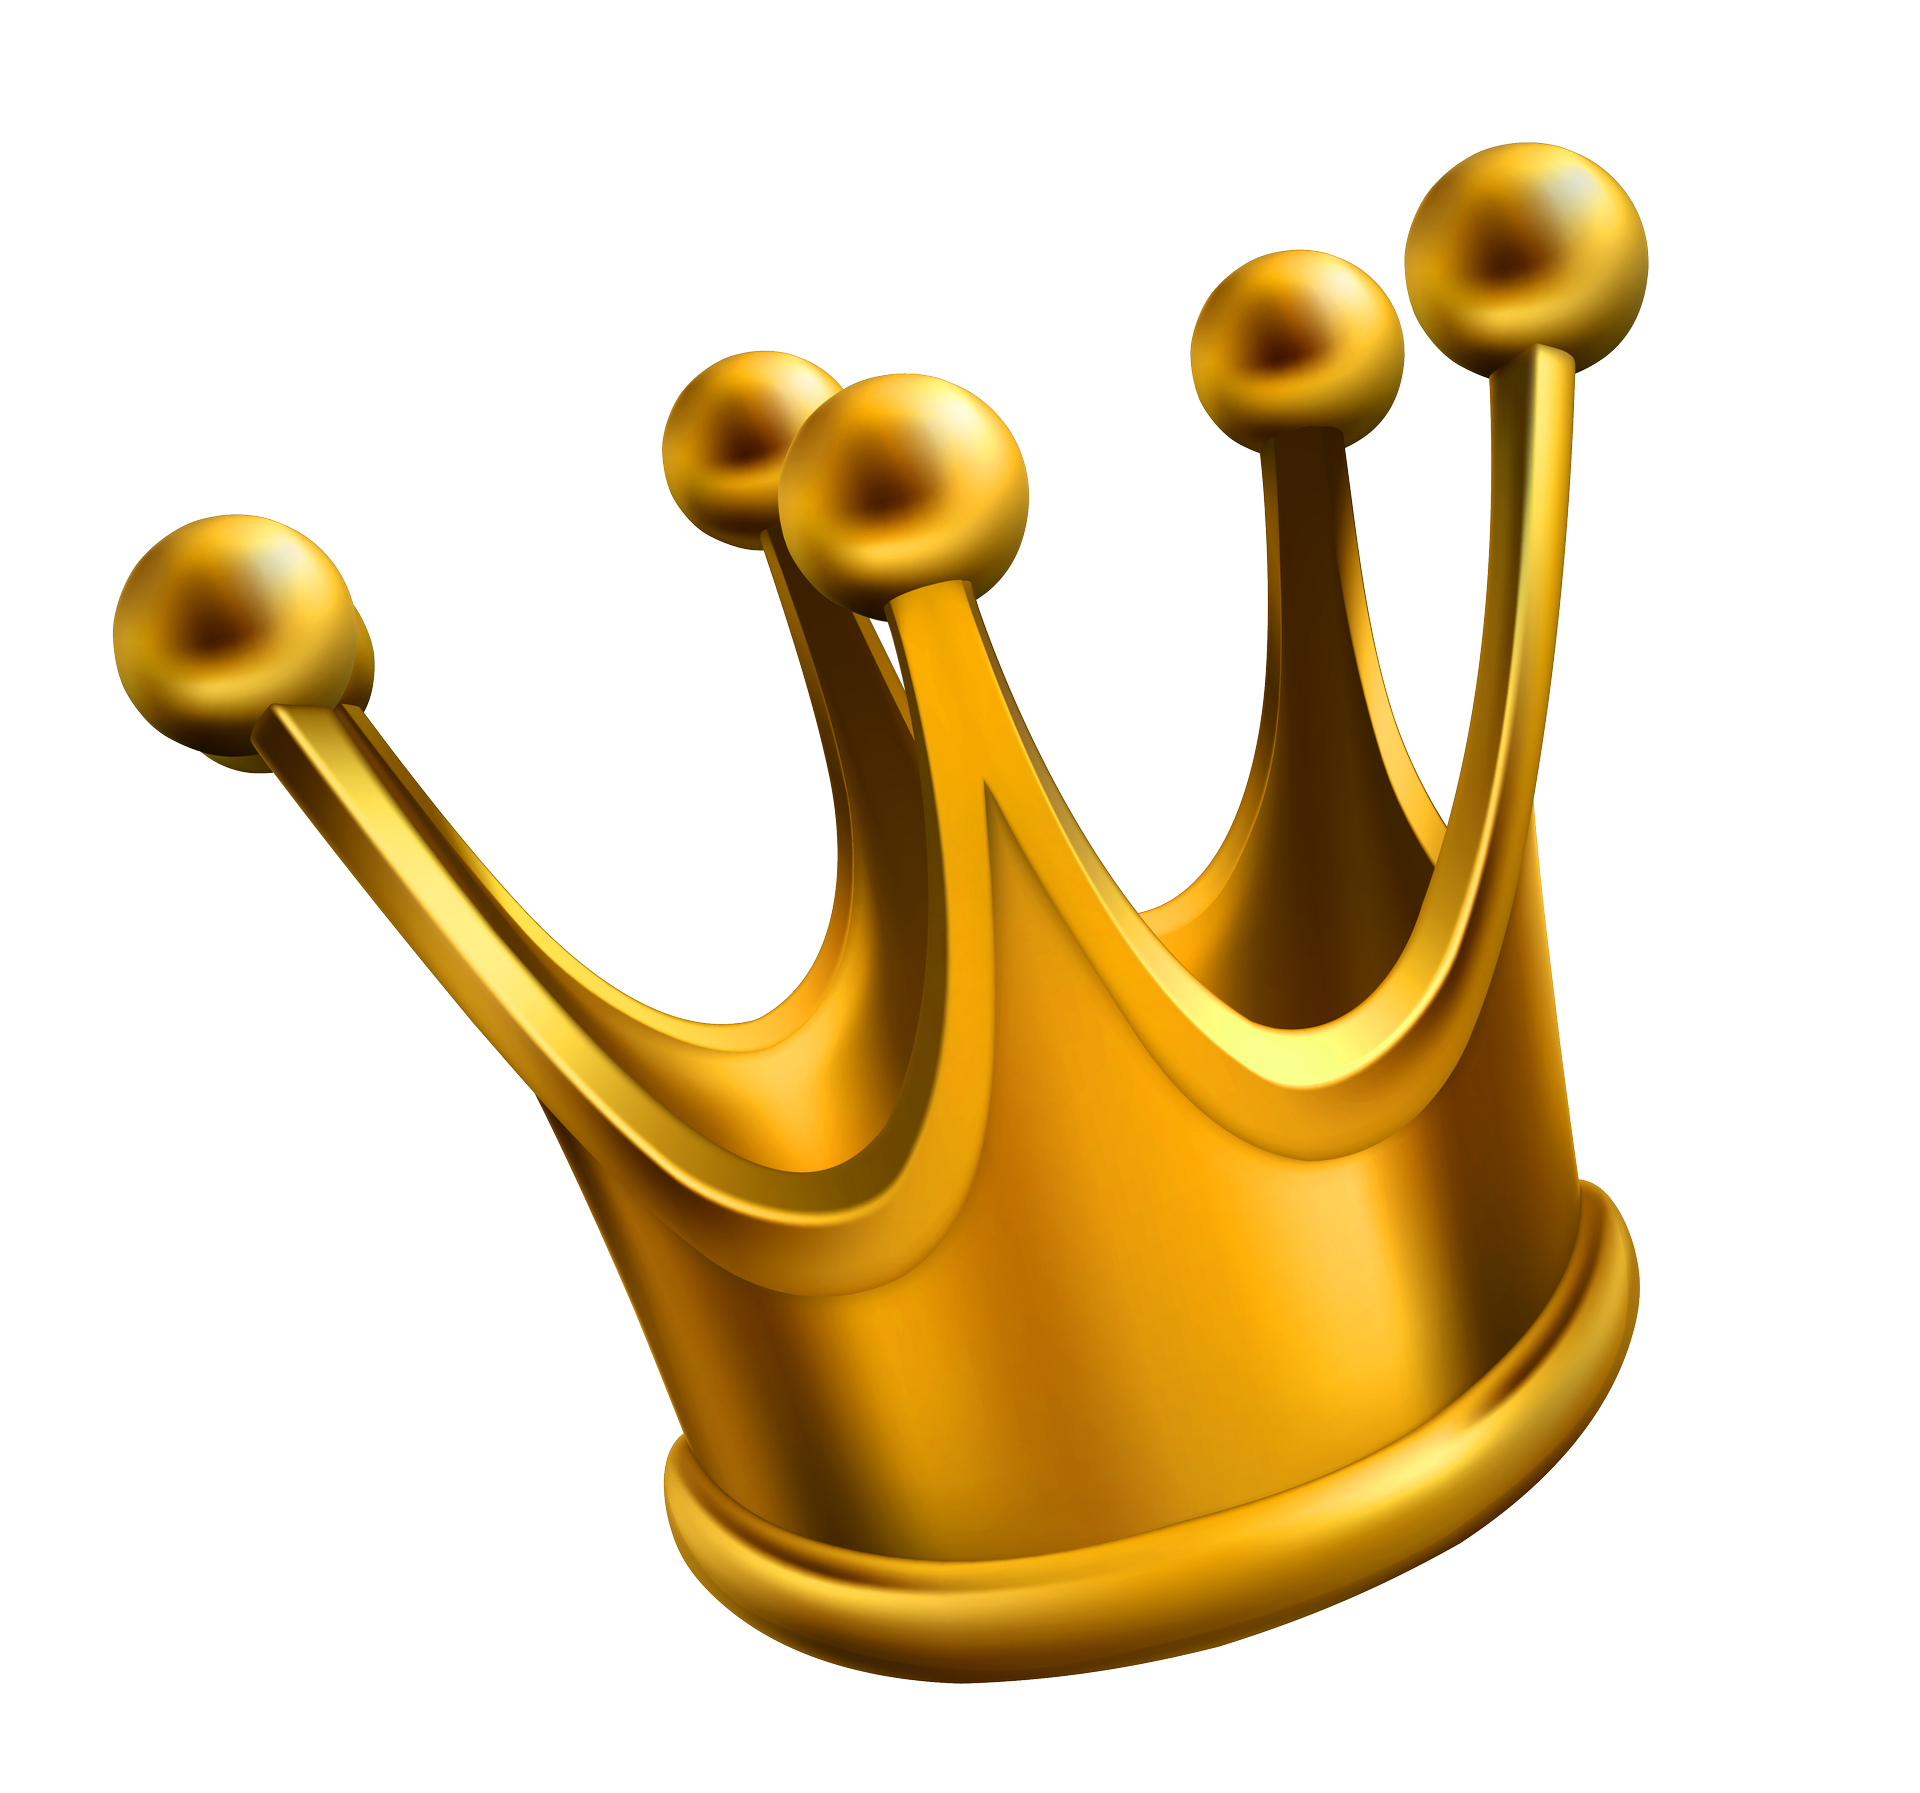 Crown Clipart at GetDrawings.com | Free for personal use Crown ... svg royalty free library